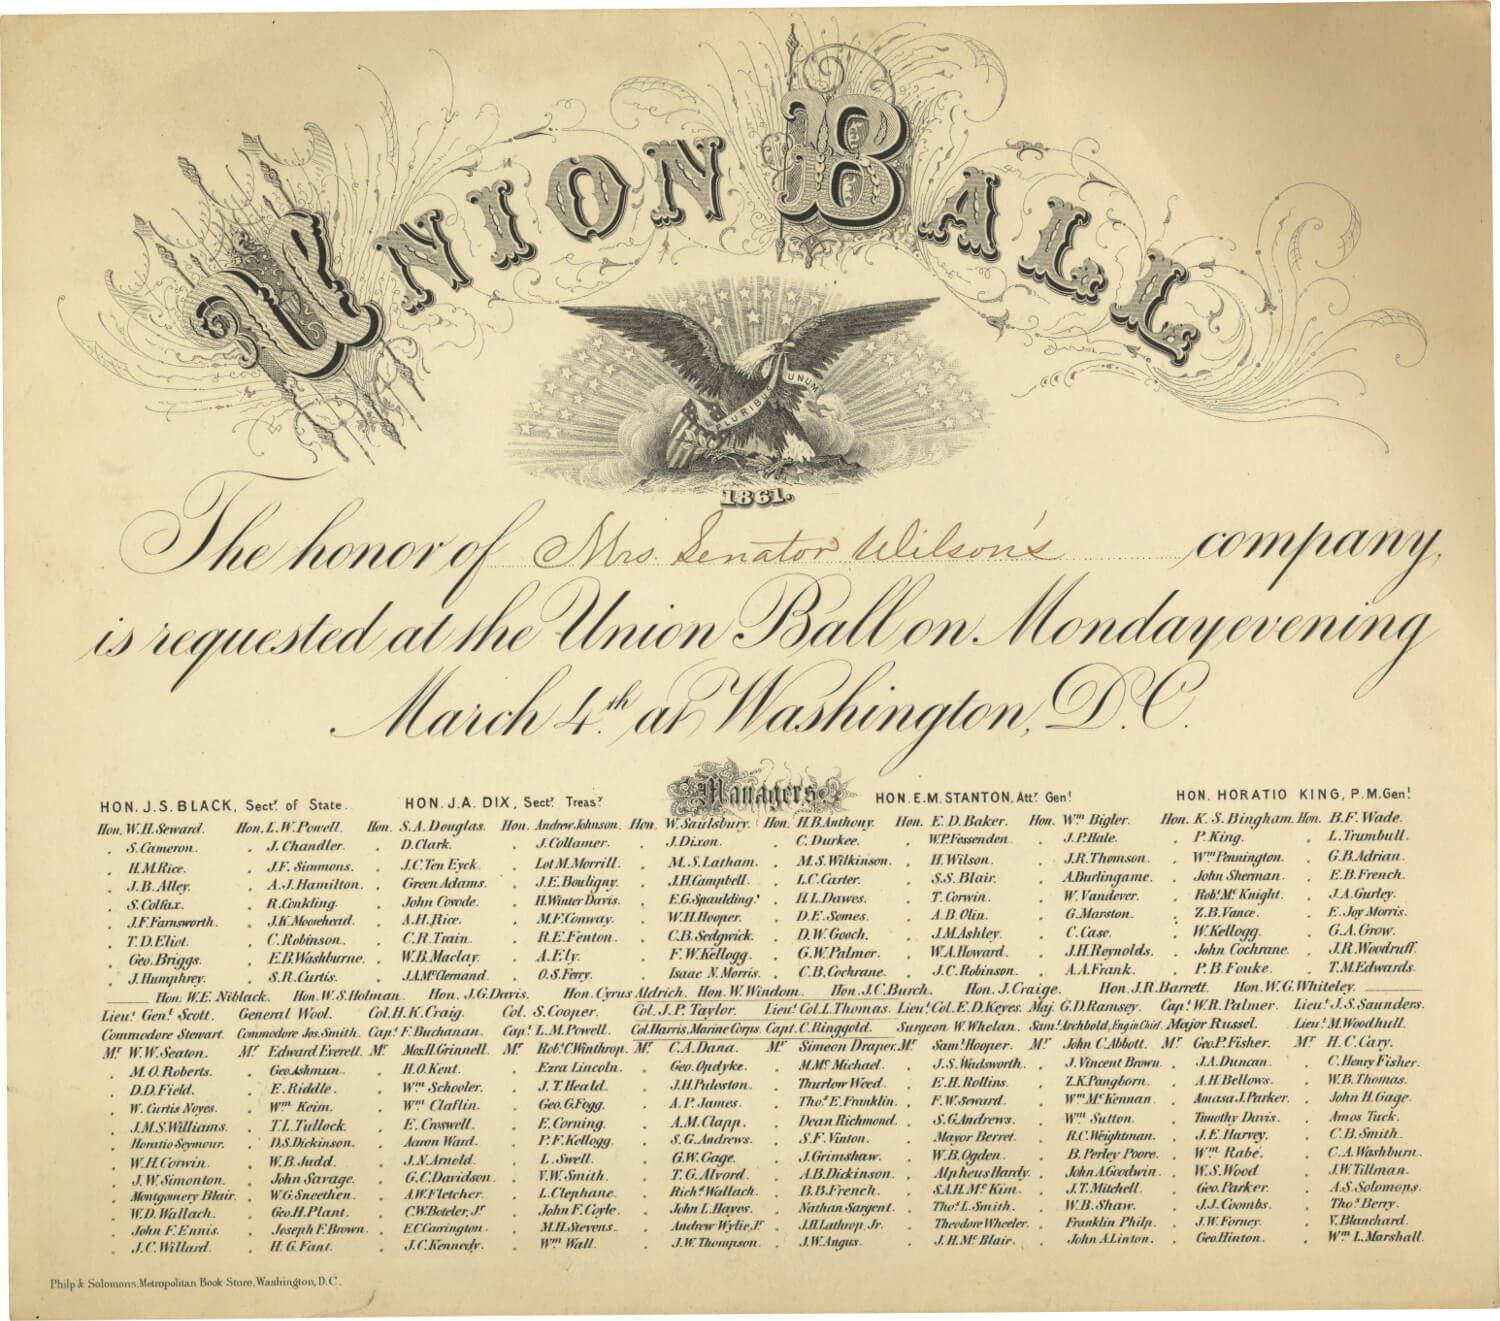 Abraham Lincoln's Inaugural Ball , 1861: Invitation Printed By, and Naming as a Ball Manager, Adolphus S. Solomons